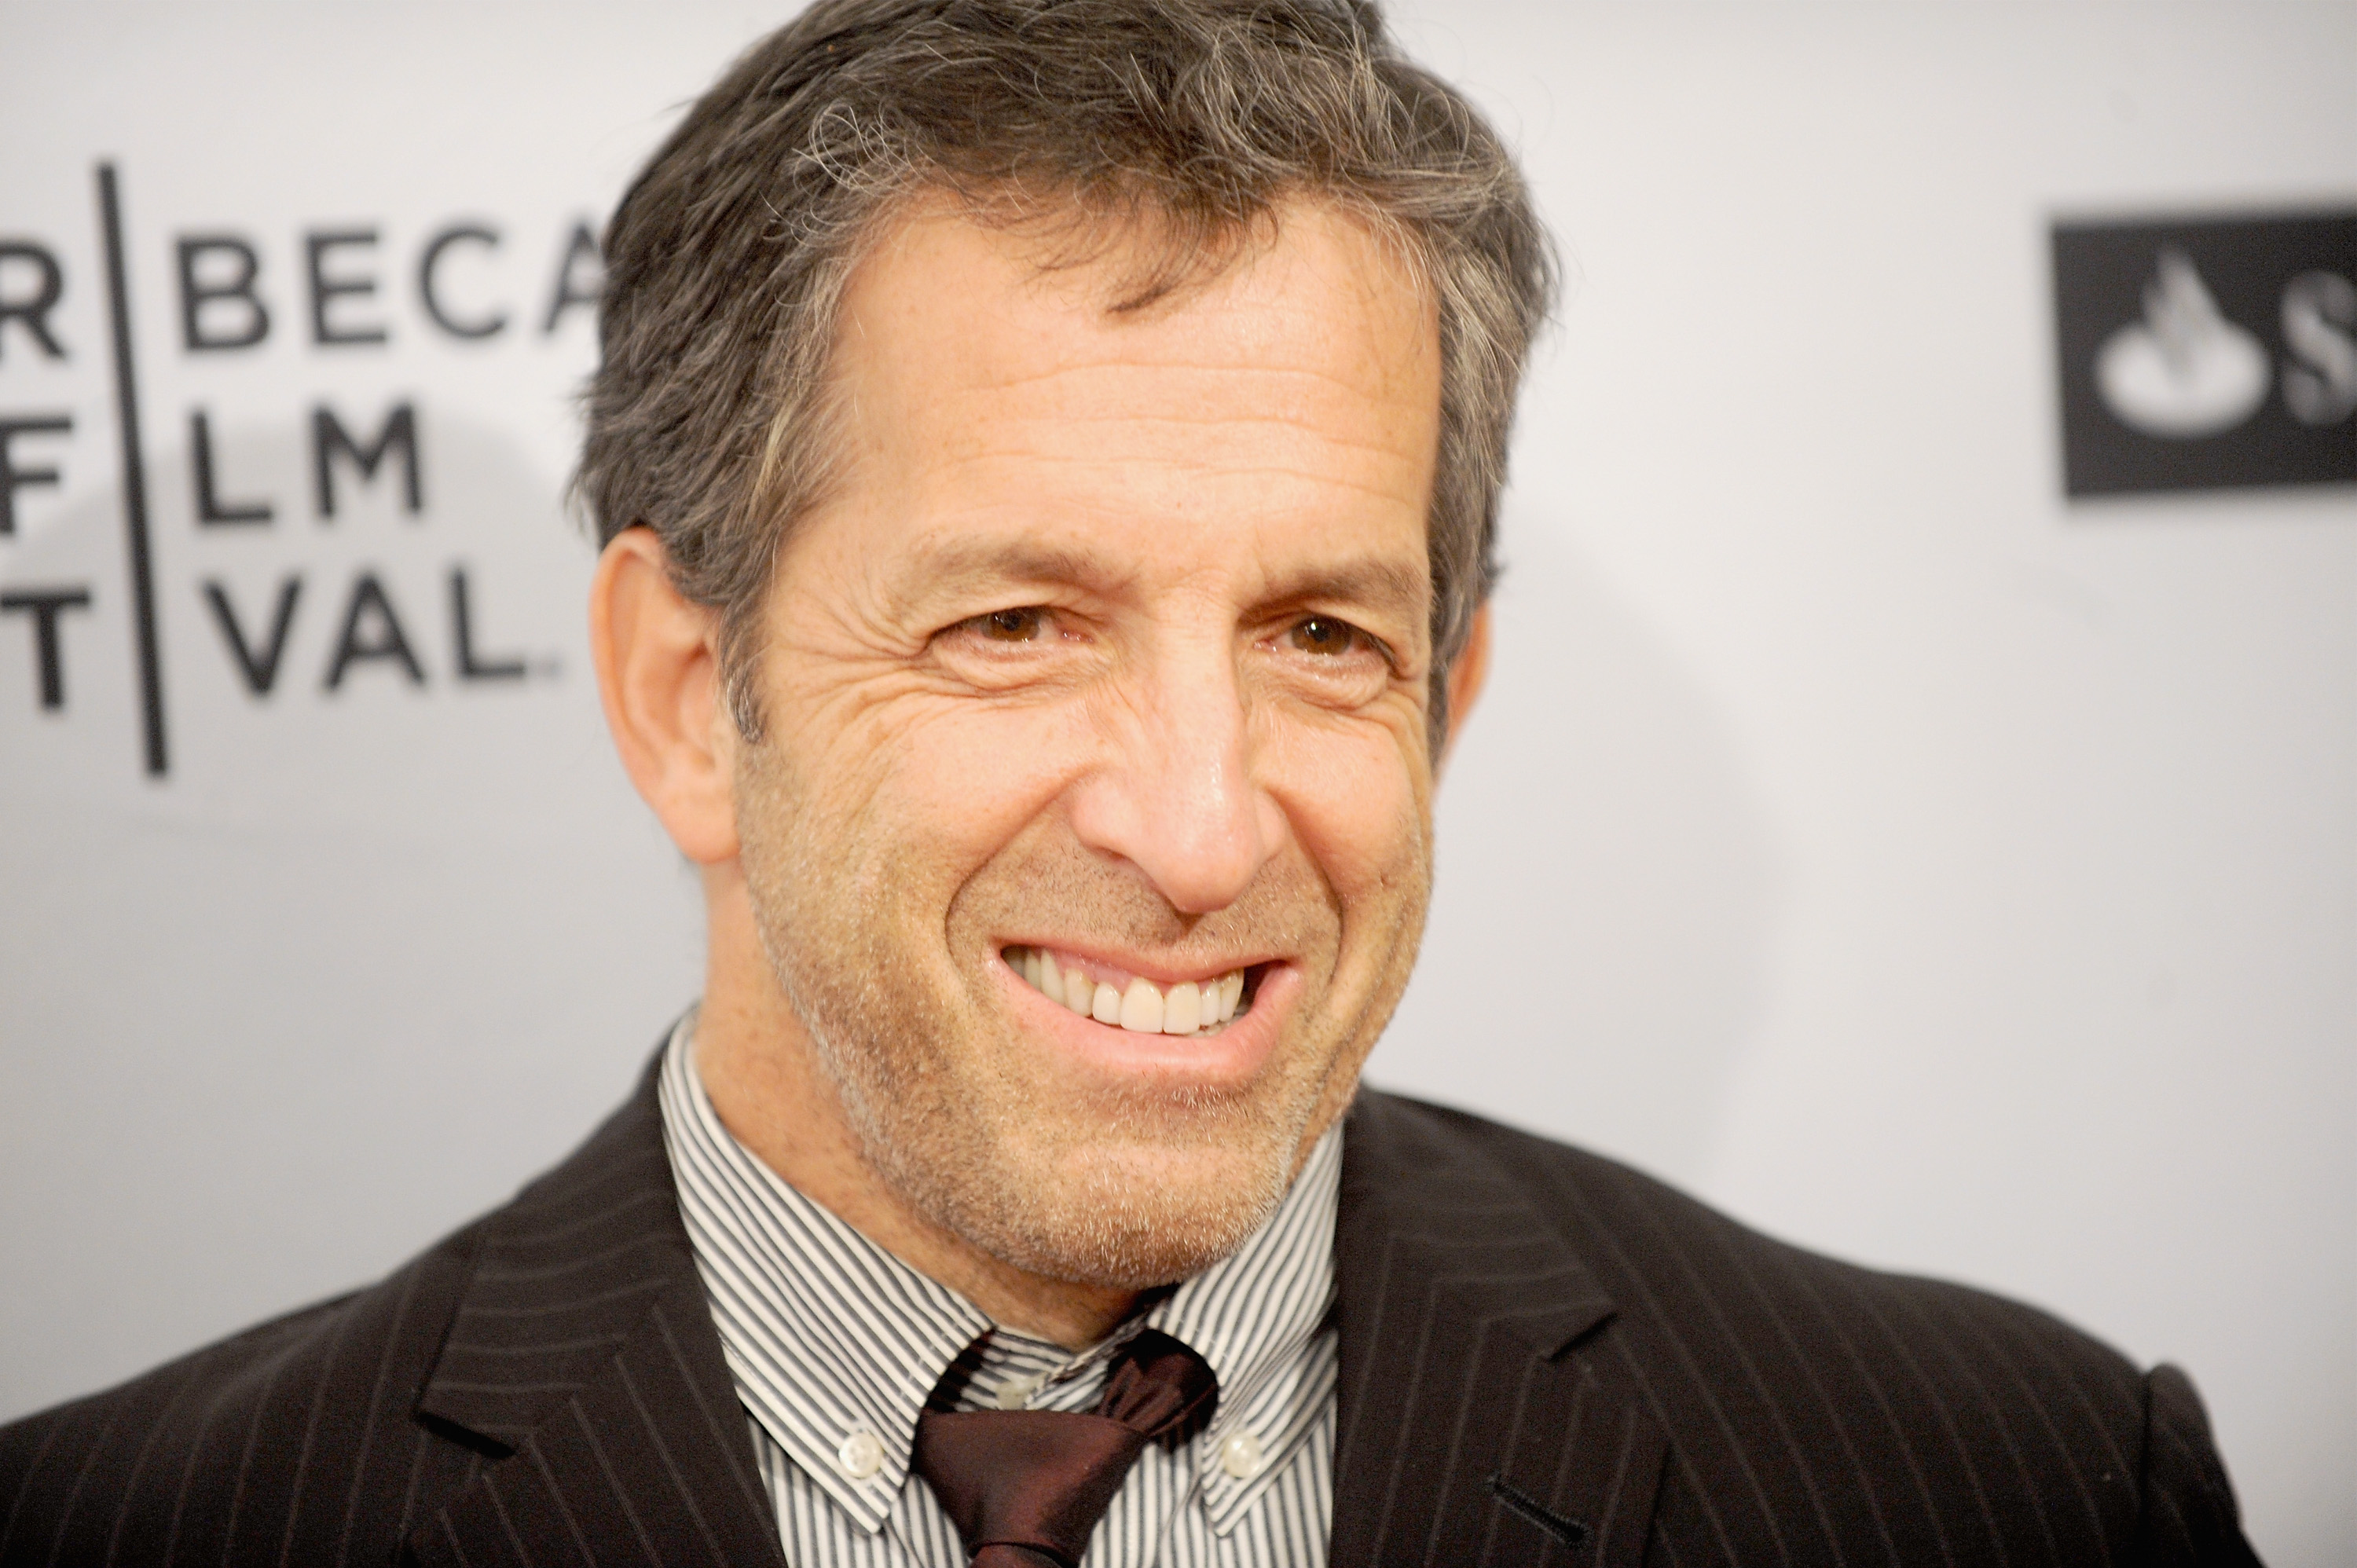 Designer Kenneth Cole attends the premiere of  In My Father's House  during the 2015 Tribeca Film Festival on April 16, 2015 in New York City.